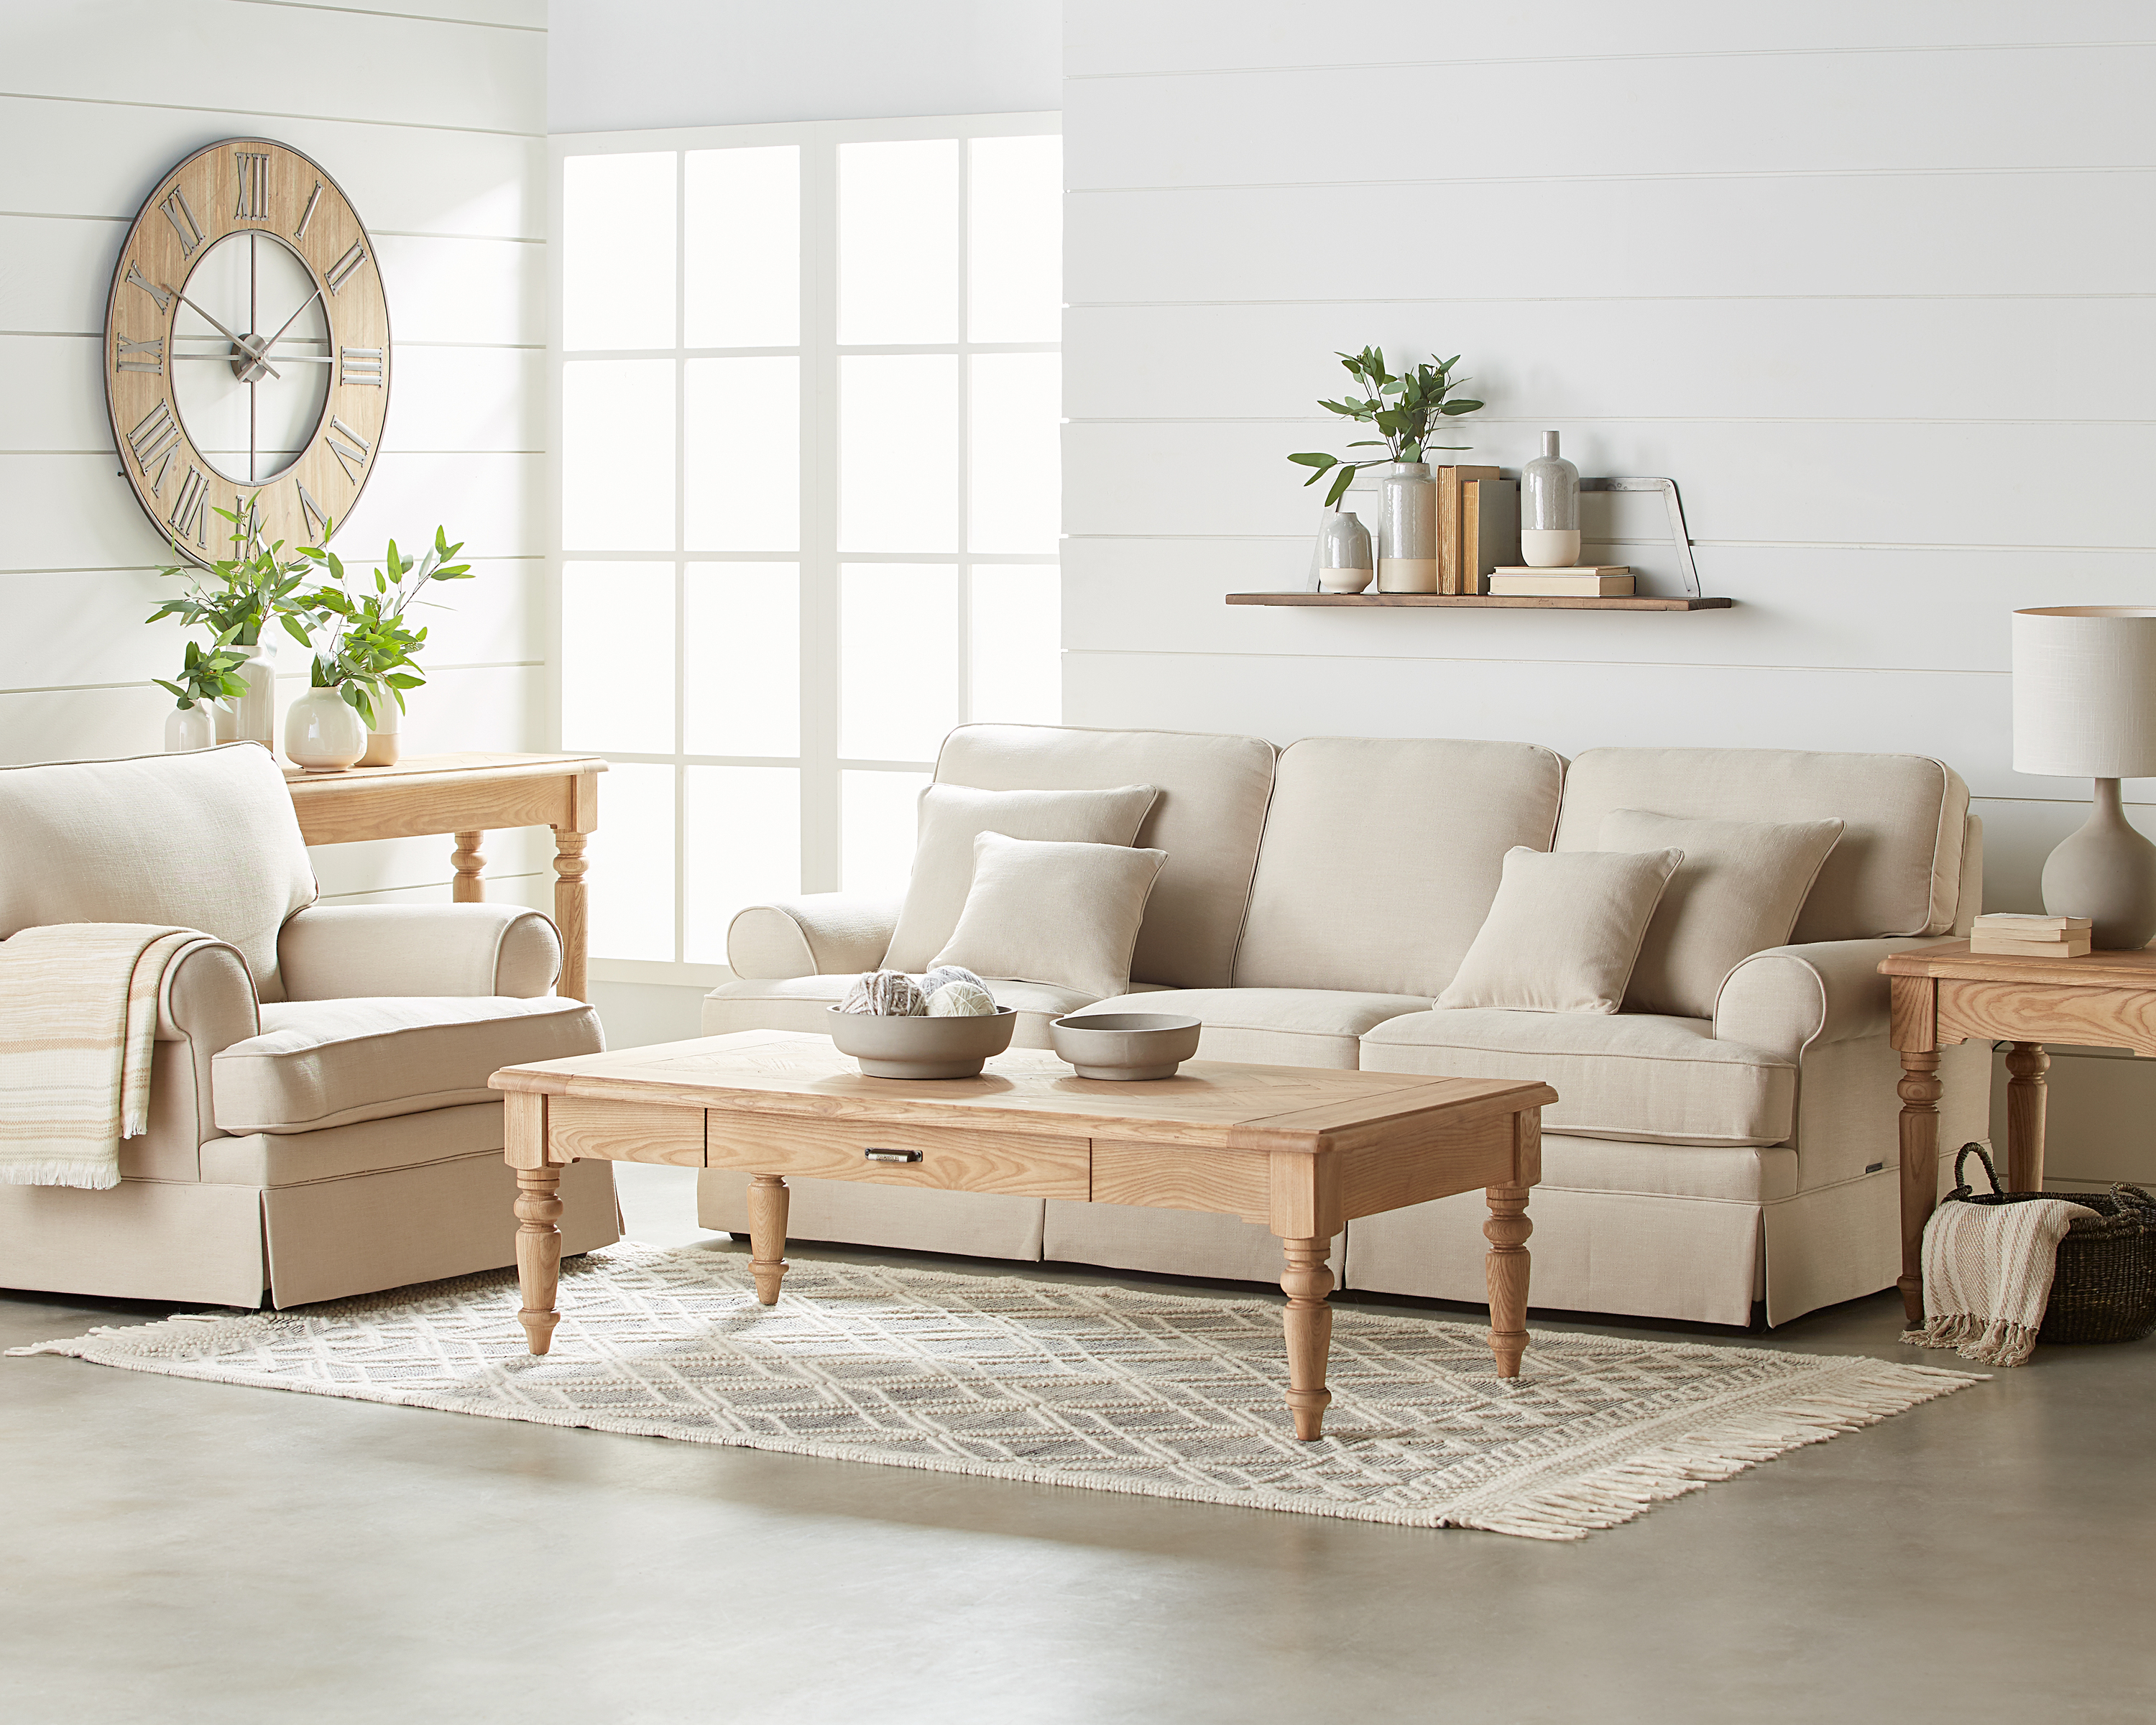 Heritage Sofa Magnolia Home – Architecture Modern Idea • Throughout Magnolia Home Paradigm Sofa Chairs By Joanna Gaines (View 16 of 25)